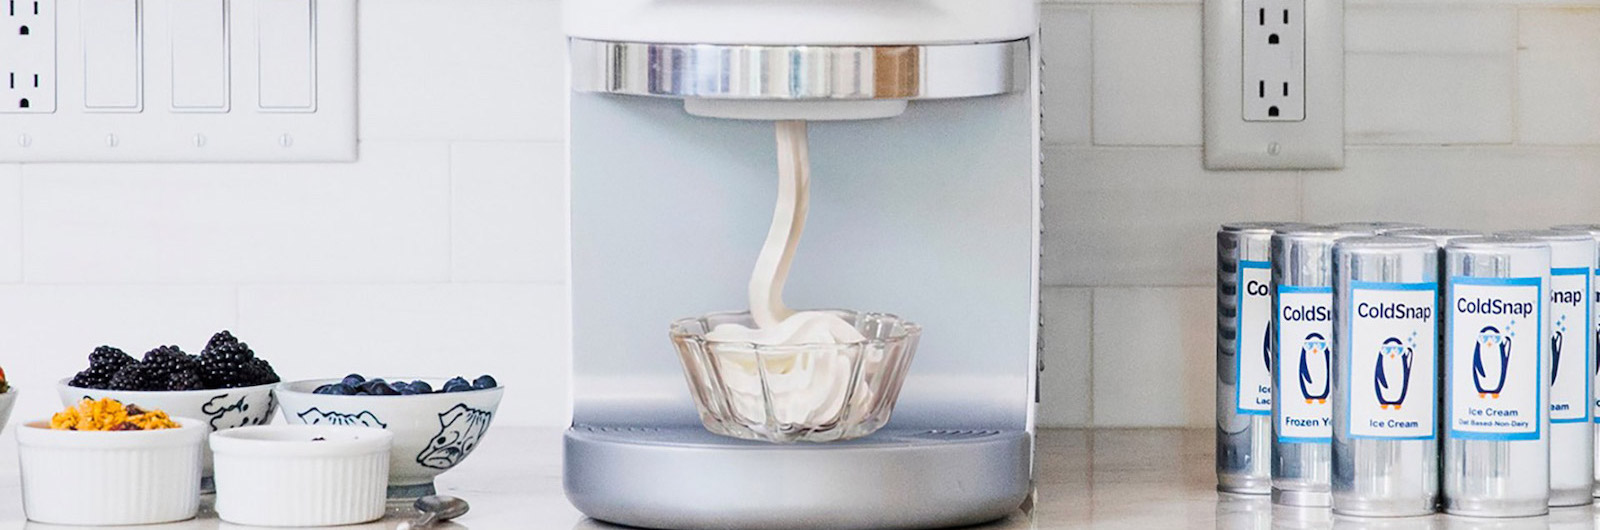 Coldsnap Is Like a Keurig for Ice Cream